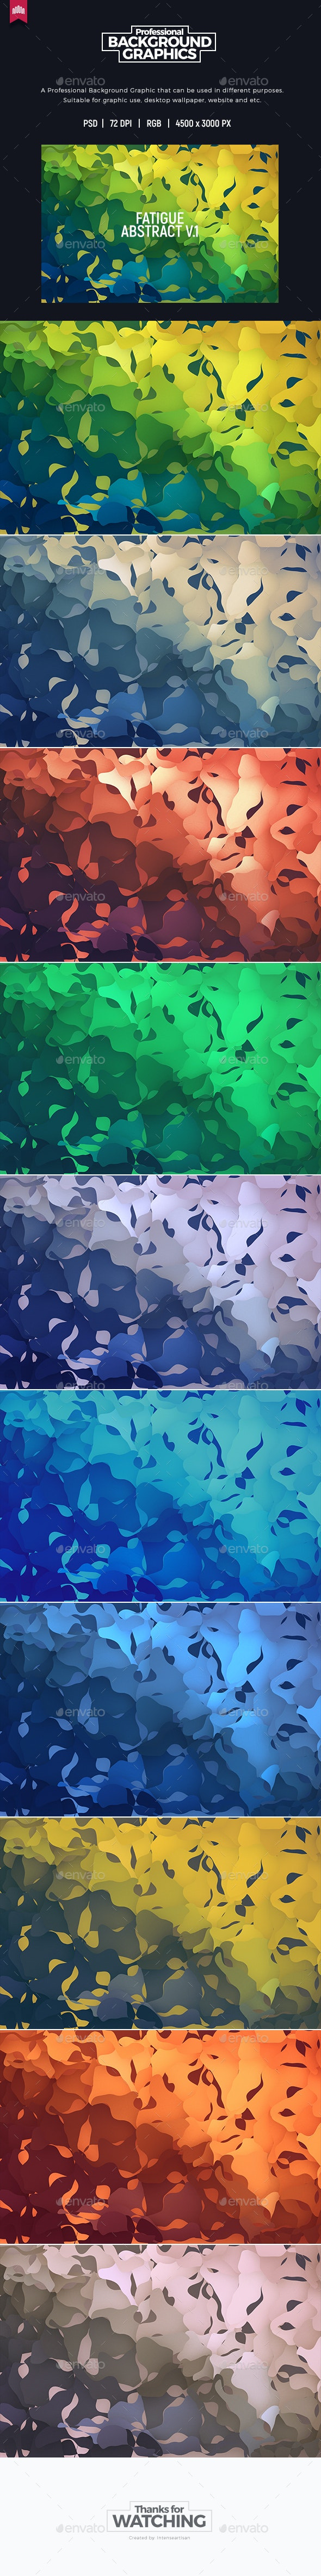 Fatigue Abstract V.1 - Background - Abstract Backgrounds